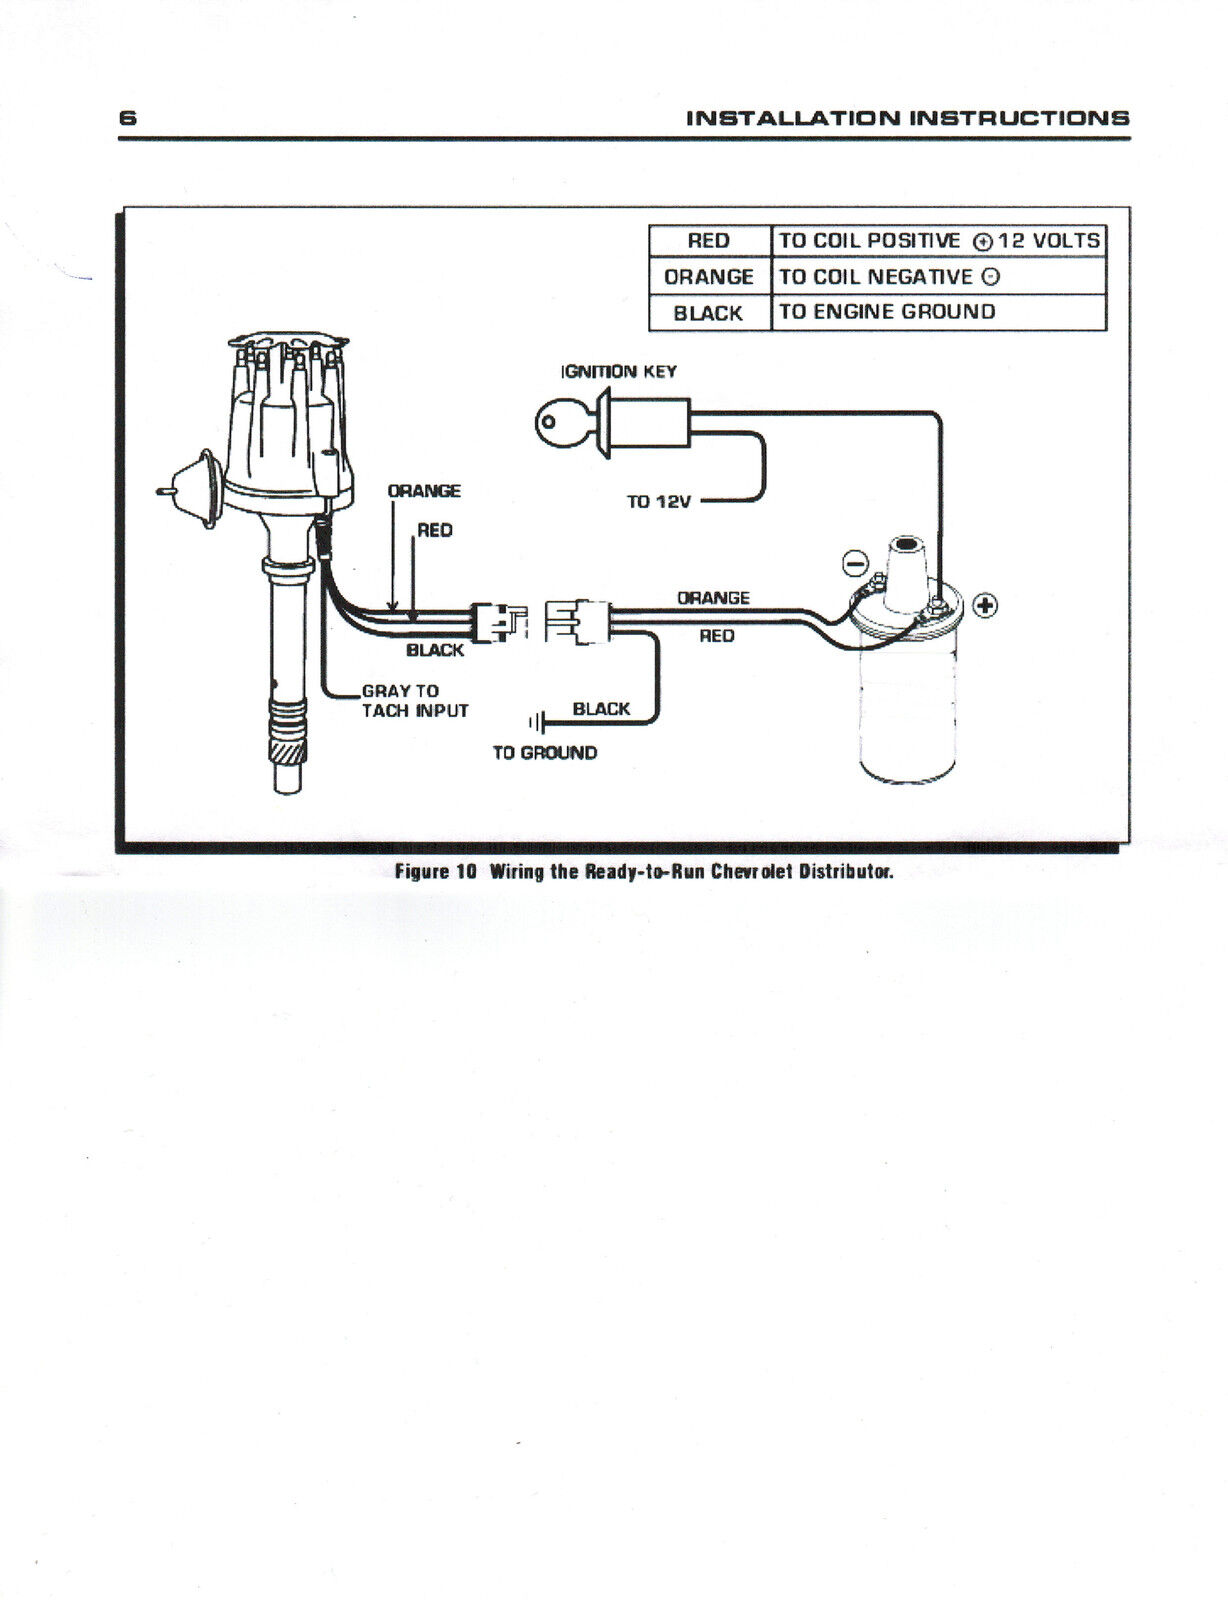 mopar msd ignition wiring diagram